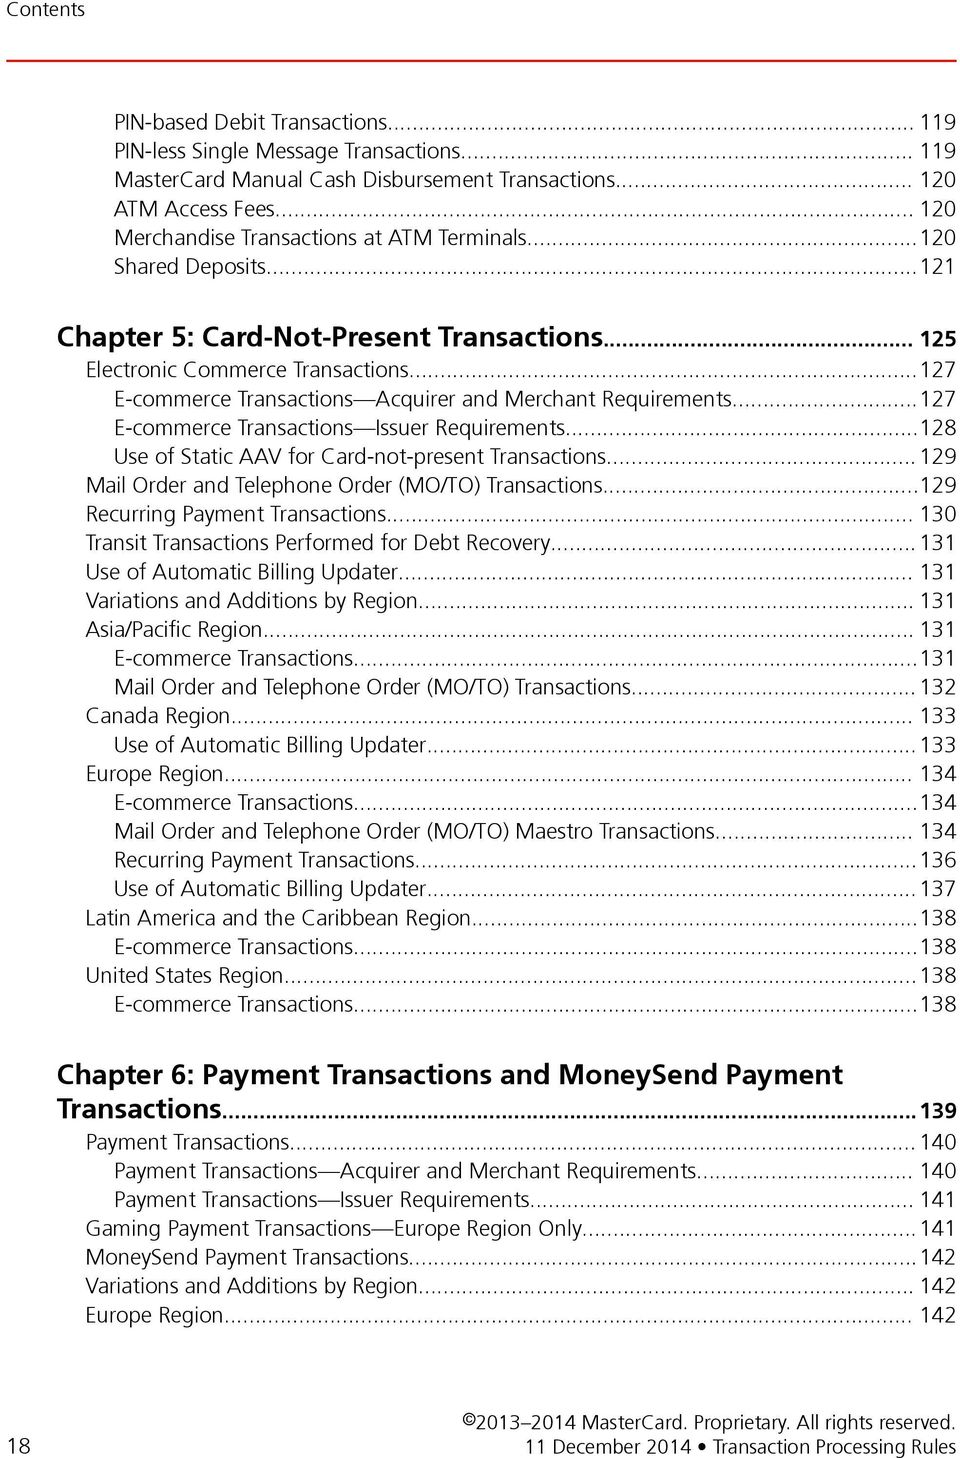 ..127 E-commerce Transactions Acquirer and Merchant Requirements...127 E-commerce Transactions Issuer Requirements...128 Use of Static AAV for Card-not-present Transactions.